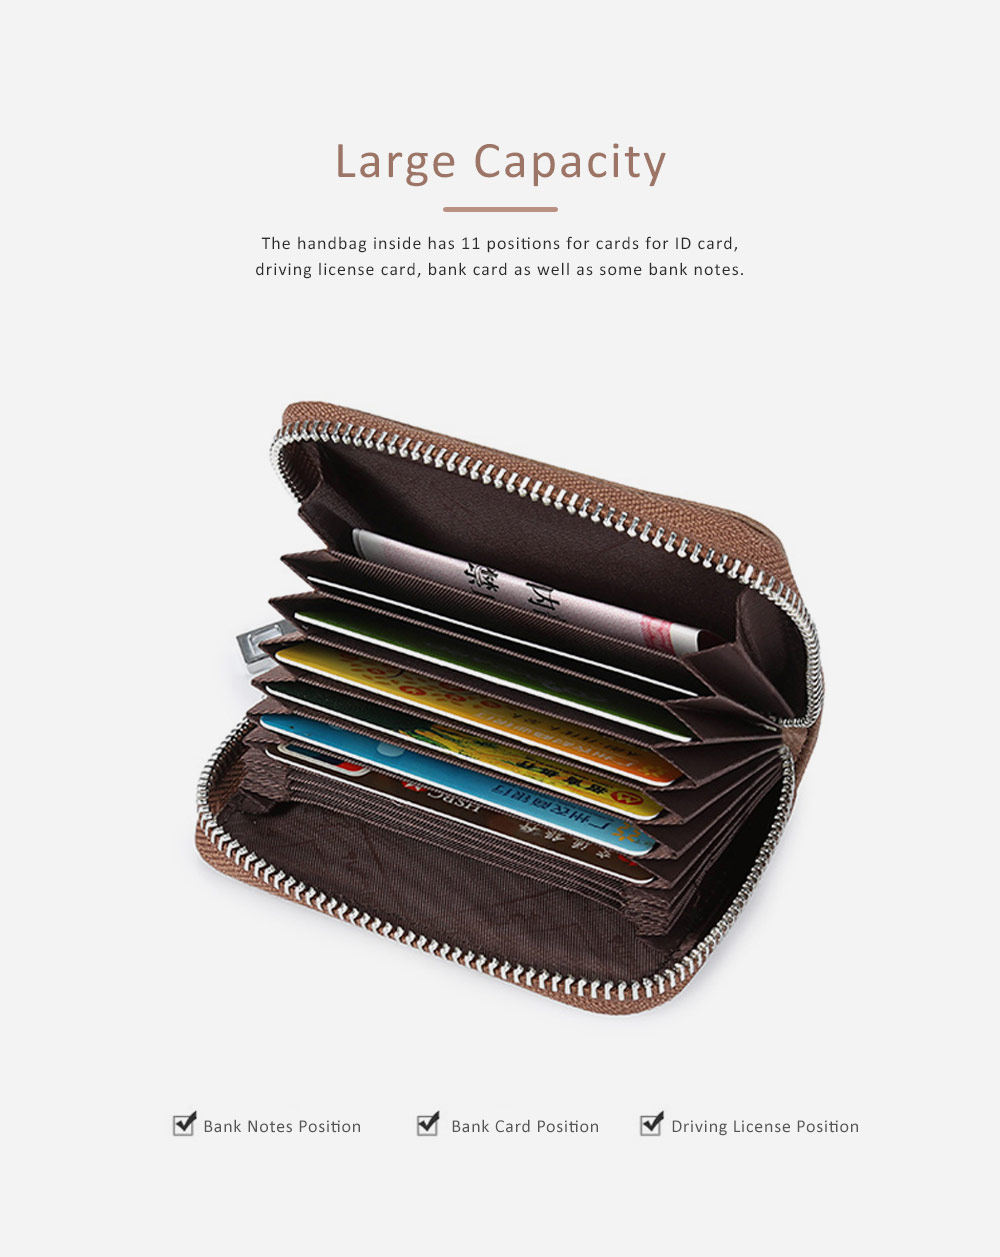 Mini PU Leather Purse, Short Purse with Zipper, Card Slots, Multifunctional Purse for Coins, Cash, Credit Cards 3